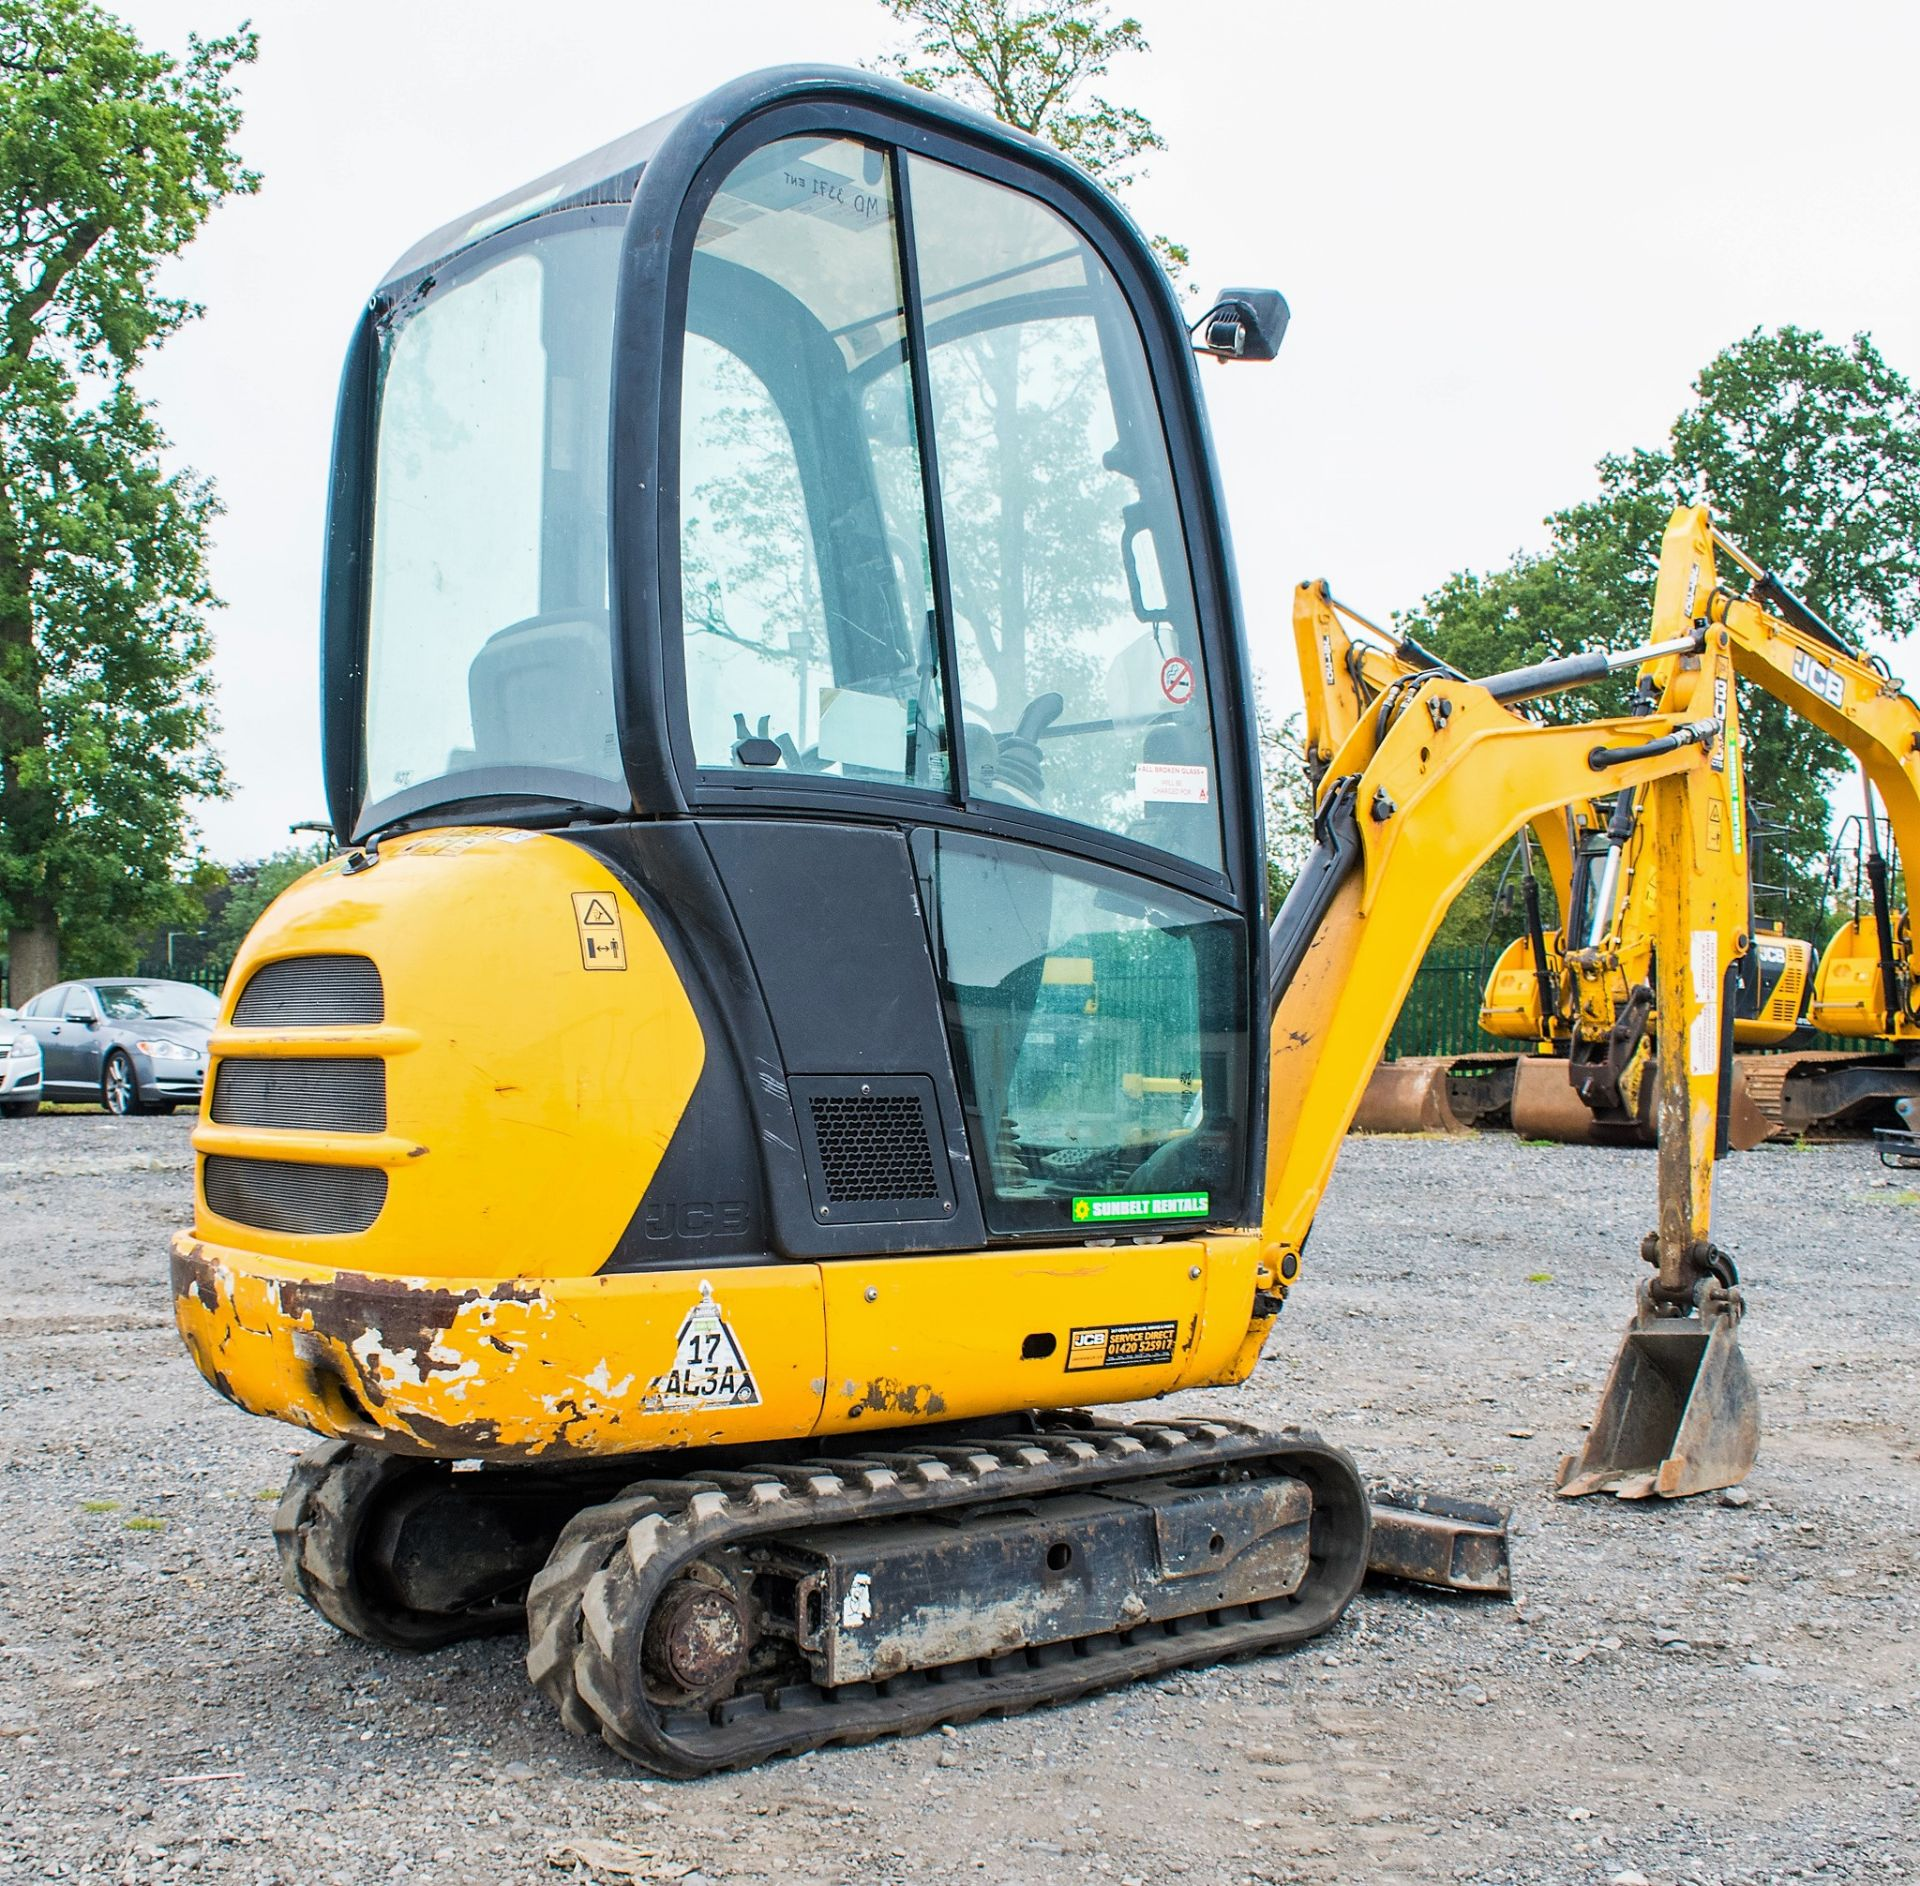 JCB 8016 1.6 tonne rubber tracked excavator  Year: 2015 S/N: 1733 Recorded Hours: 1861 A669405 - Image 3 of 20